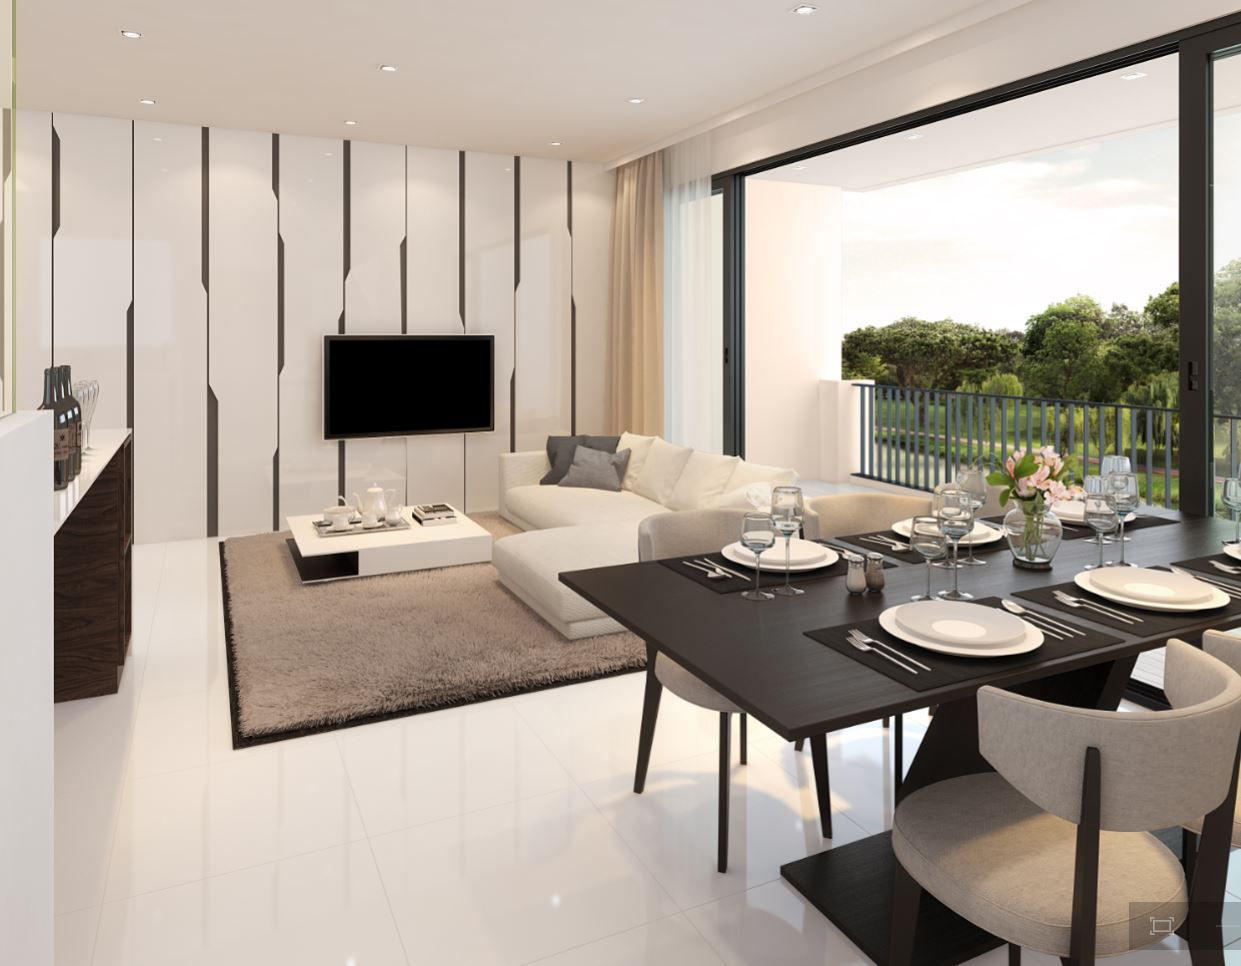 The terrace living dining